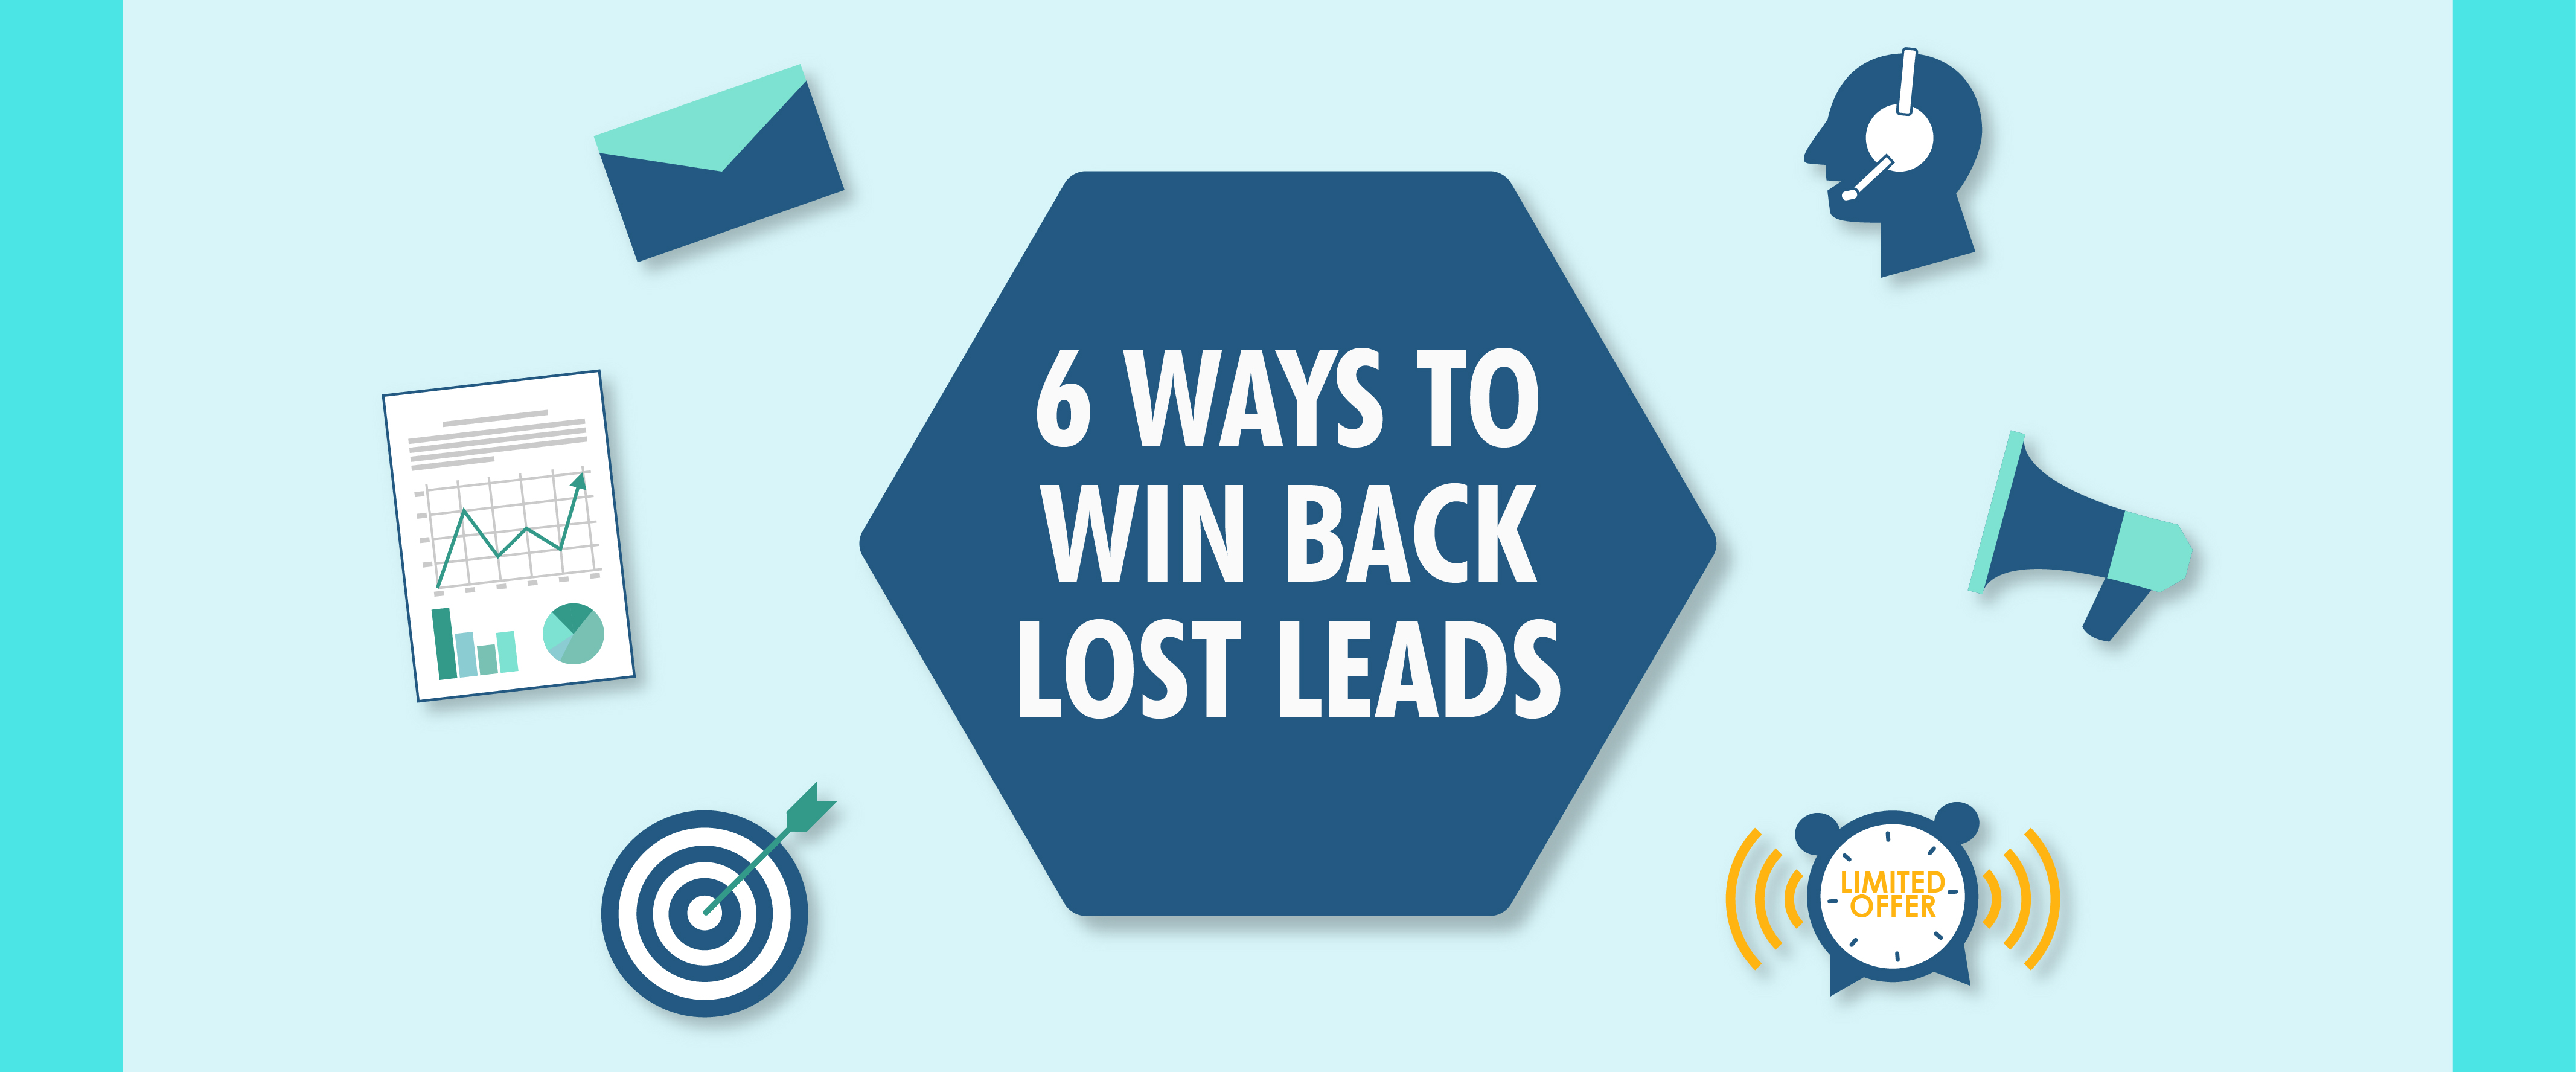 6Ways to Win Back Lost Leads